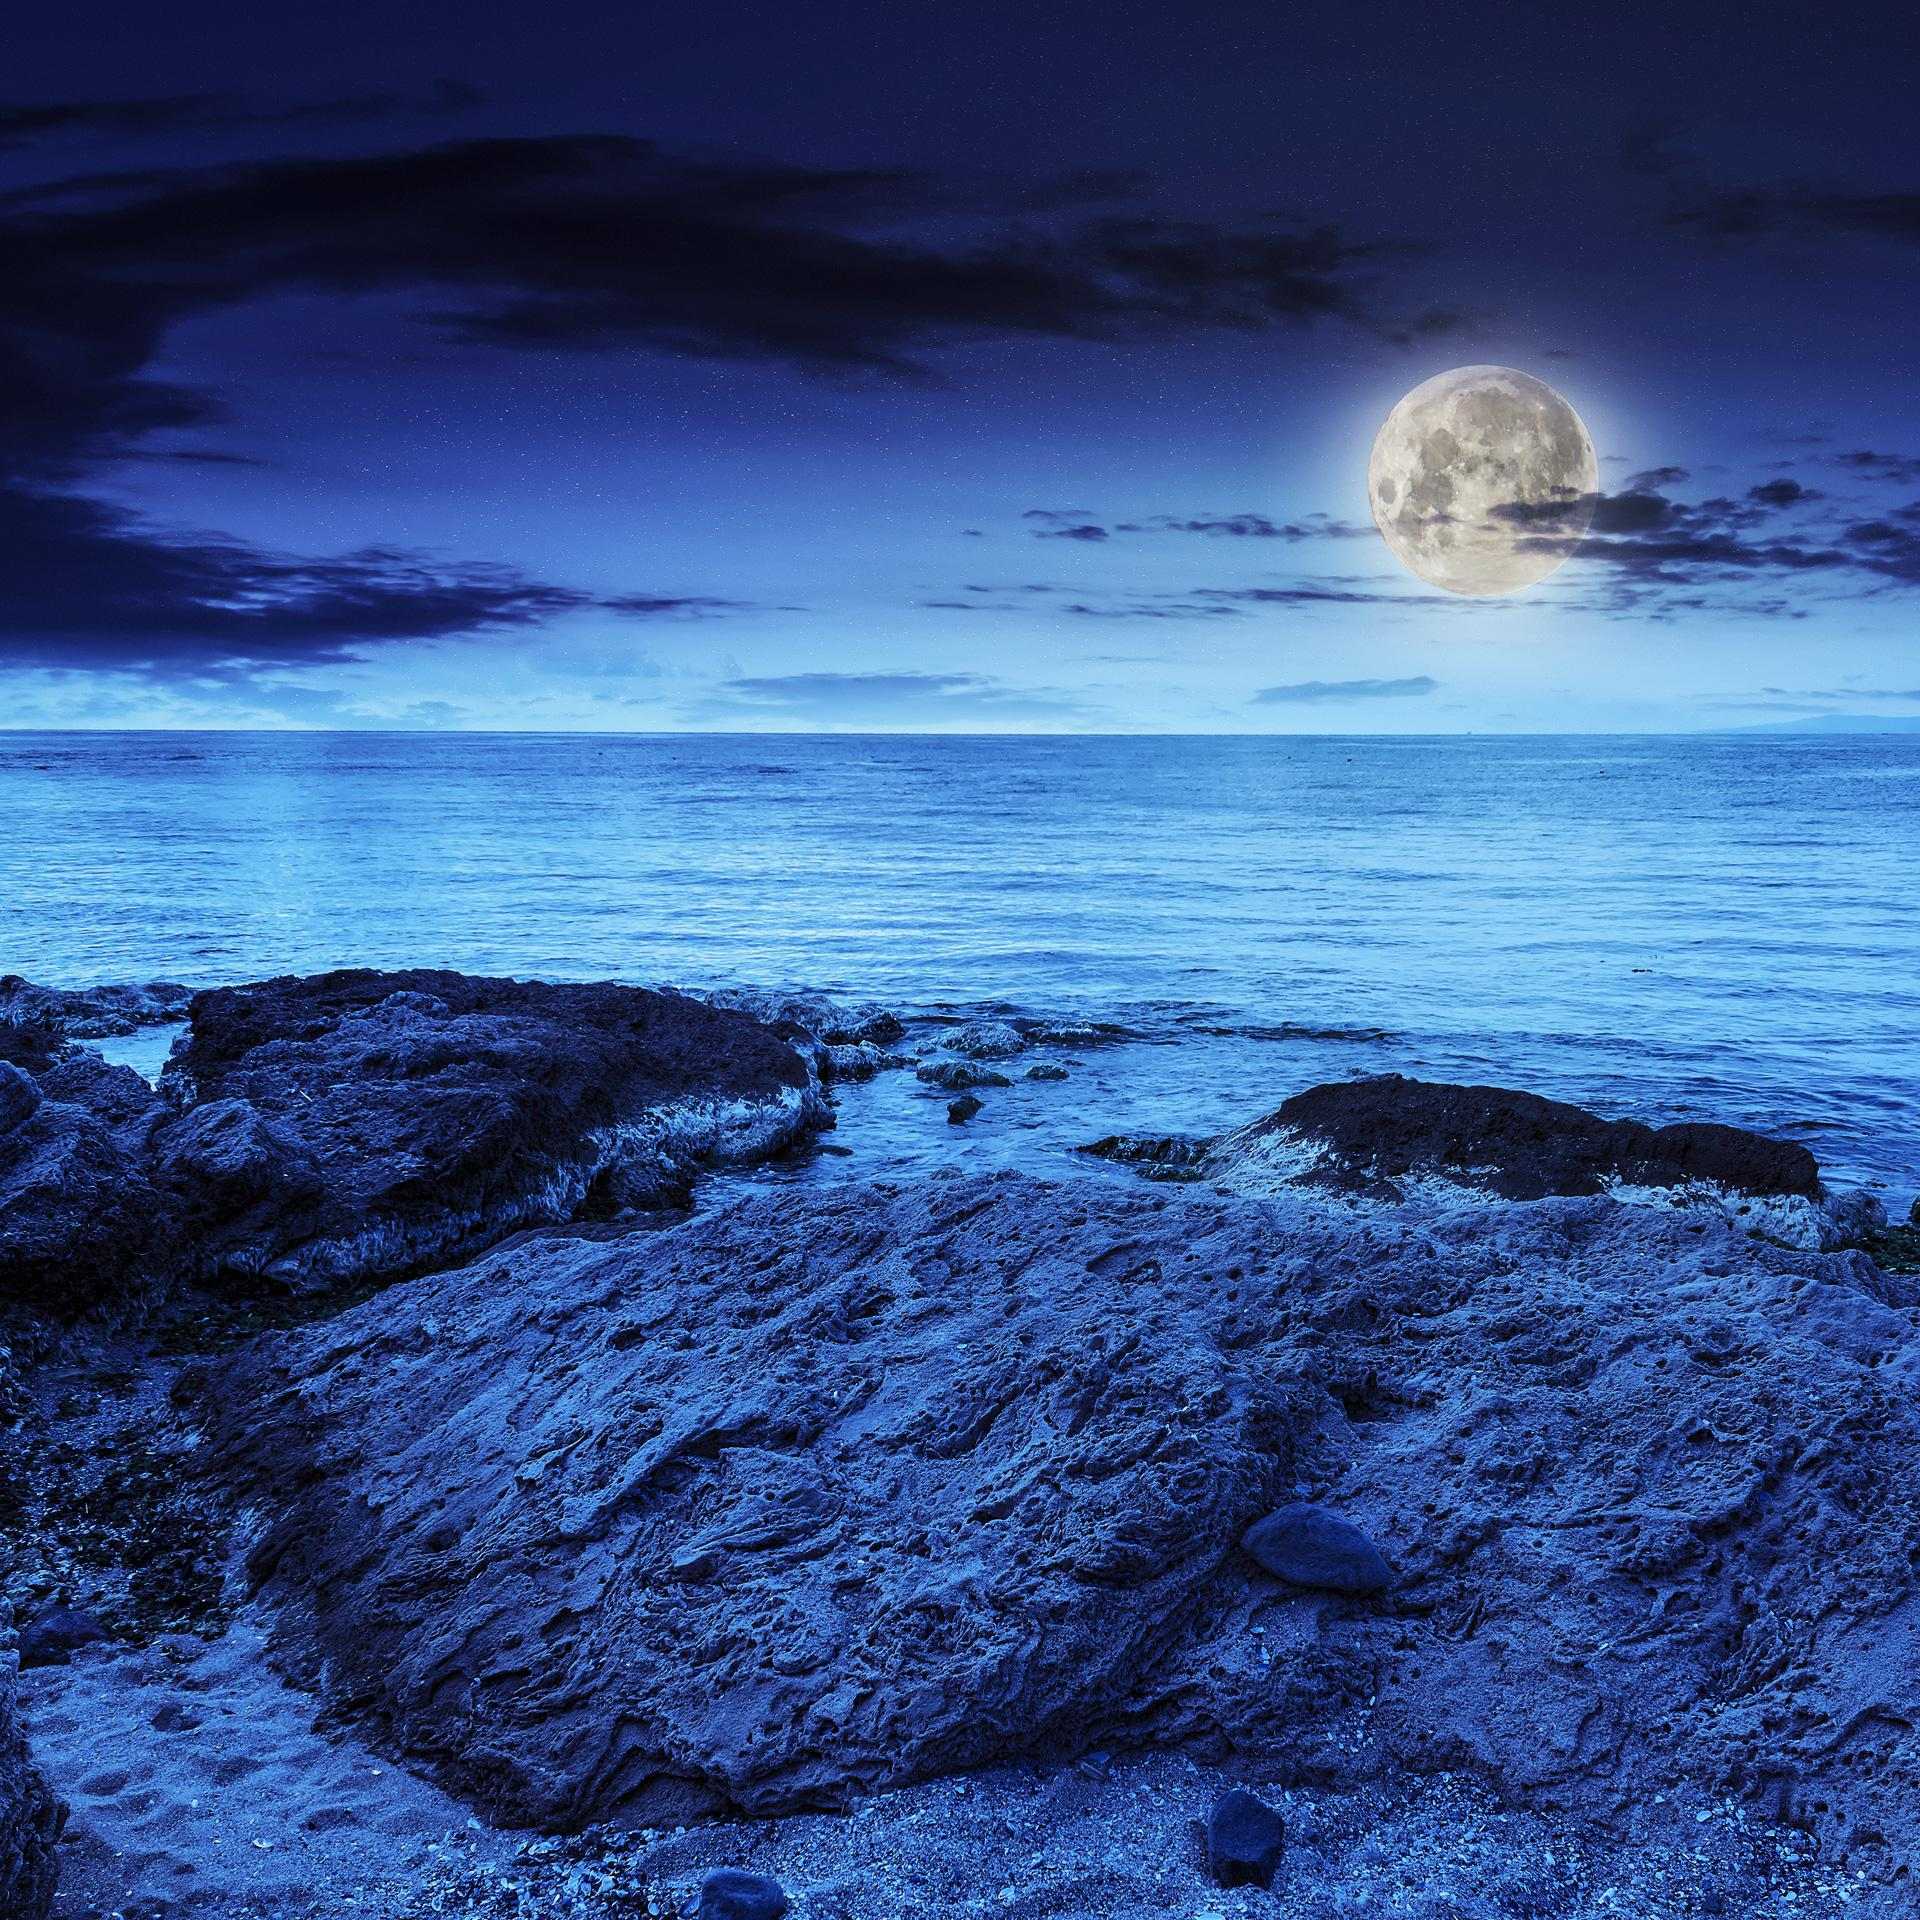 Free stock photo of a beach in the evening. Blue hue filter. Photo by Pellinni on Morguefile.com